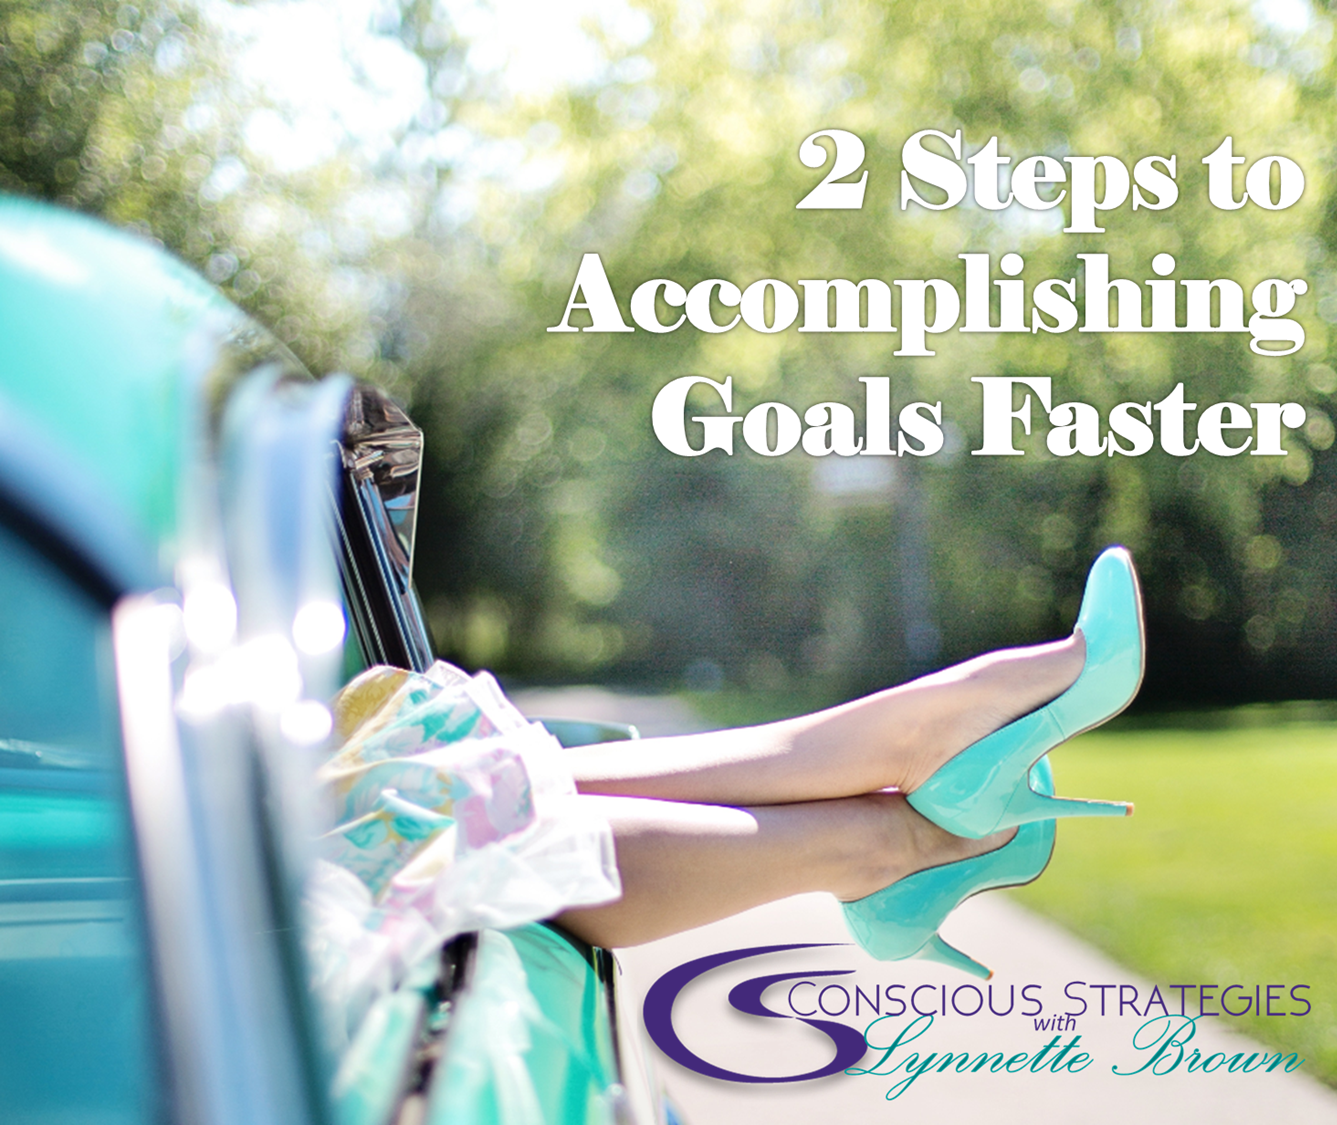 http://consciousstrategies.com/uncategorized/how-to-reach-your-goals-faster/